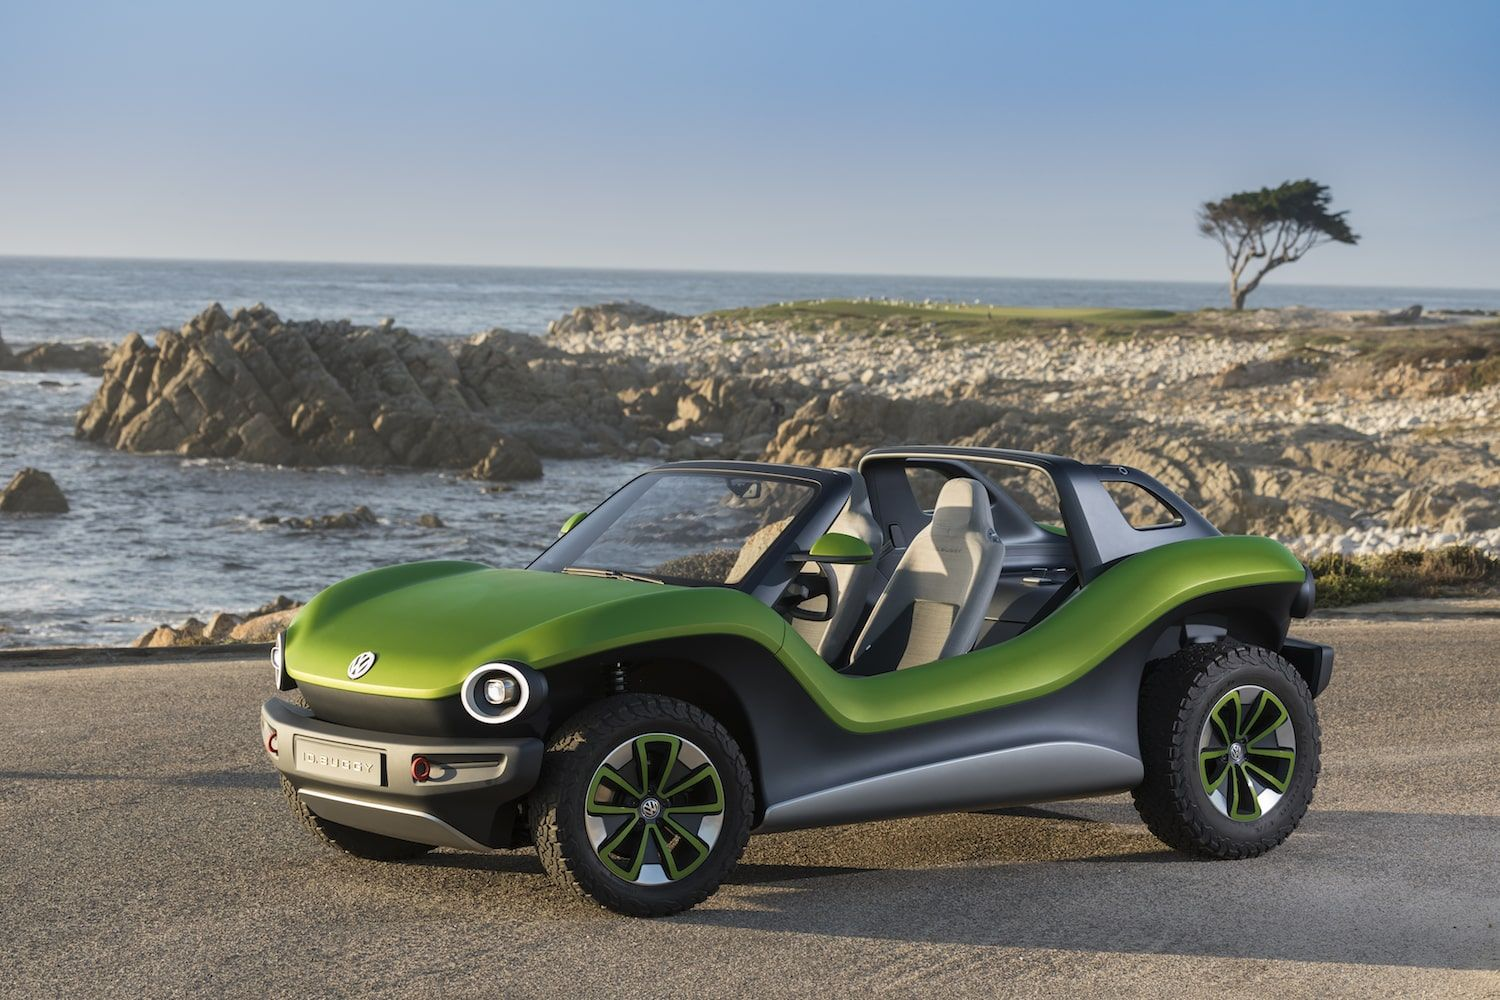 Vw Buggy Concept Is A Modern Take On Classic 60s Dune Buggies Carprousa Beach Buggy Volkswagen Pebble Beach Concours